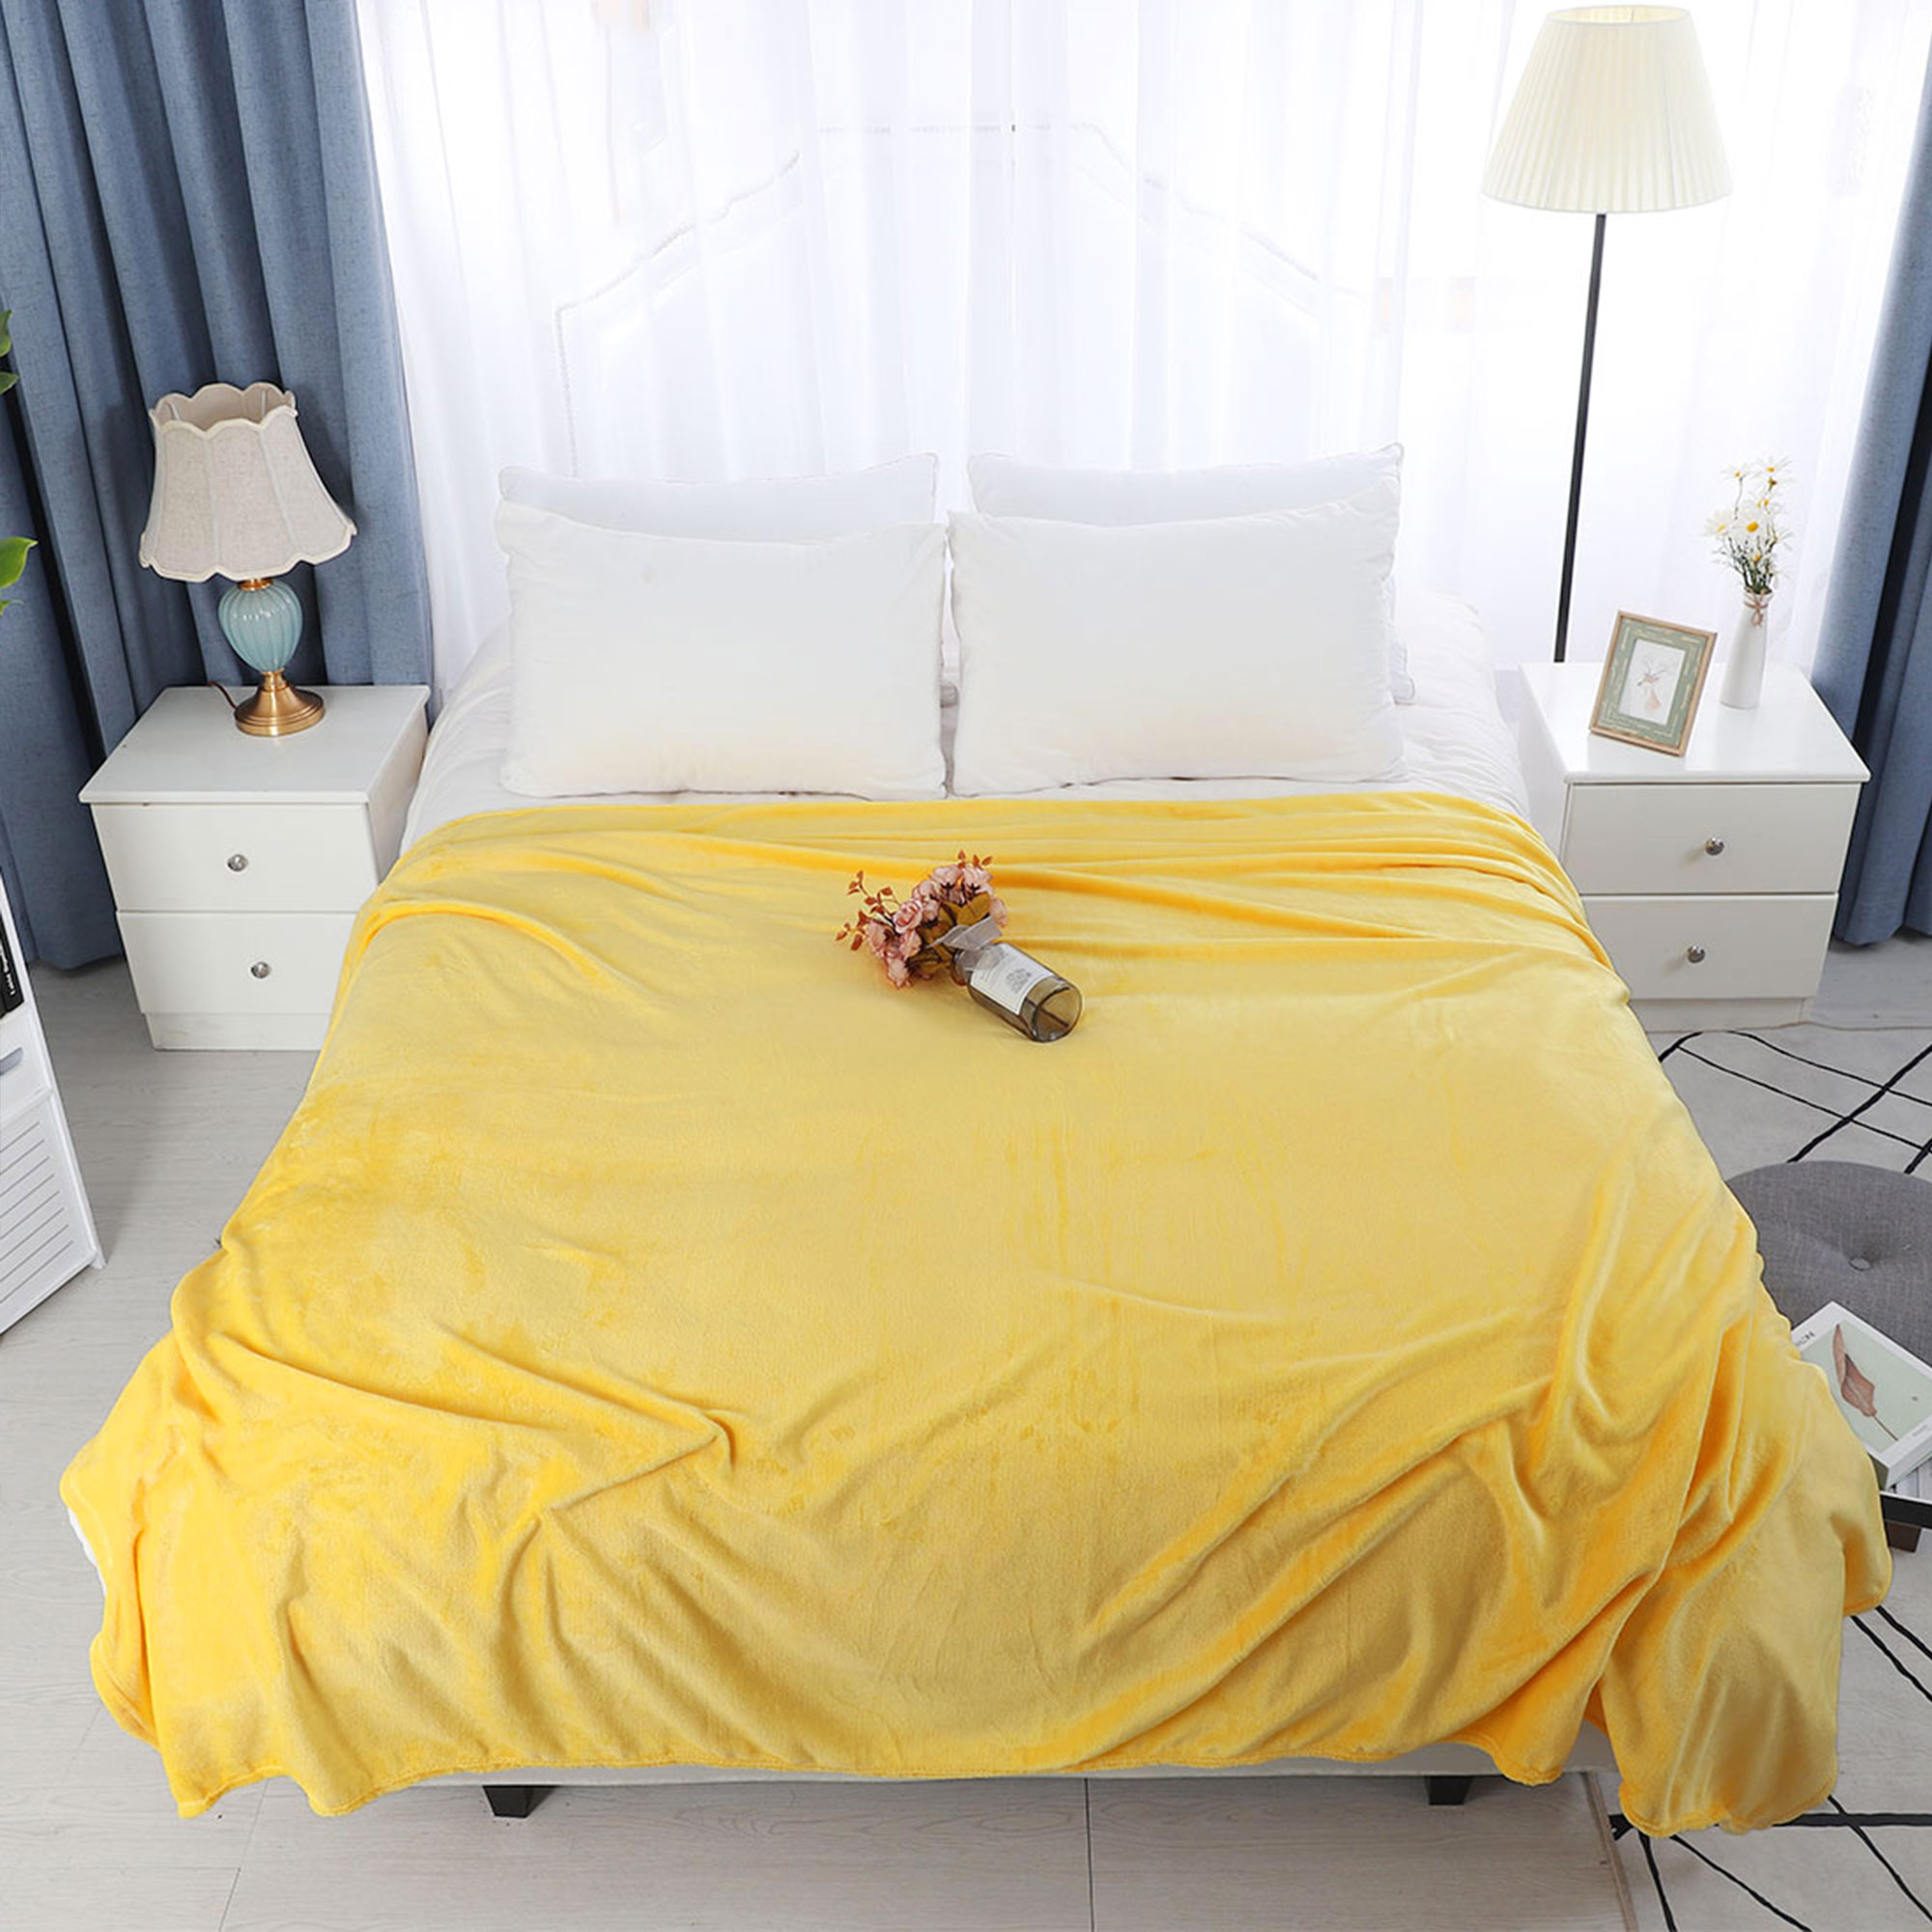 Home Bedroom Soft Microplush Fleece Throw Blanket for Queen Bed Camel Color